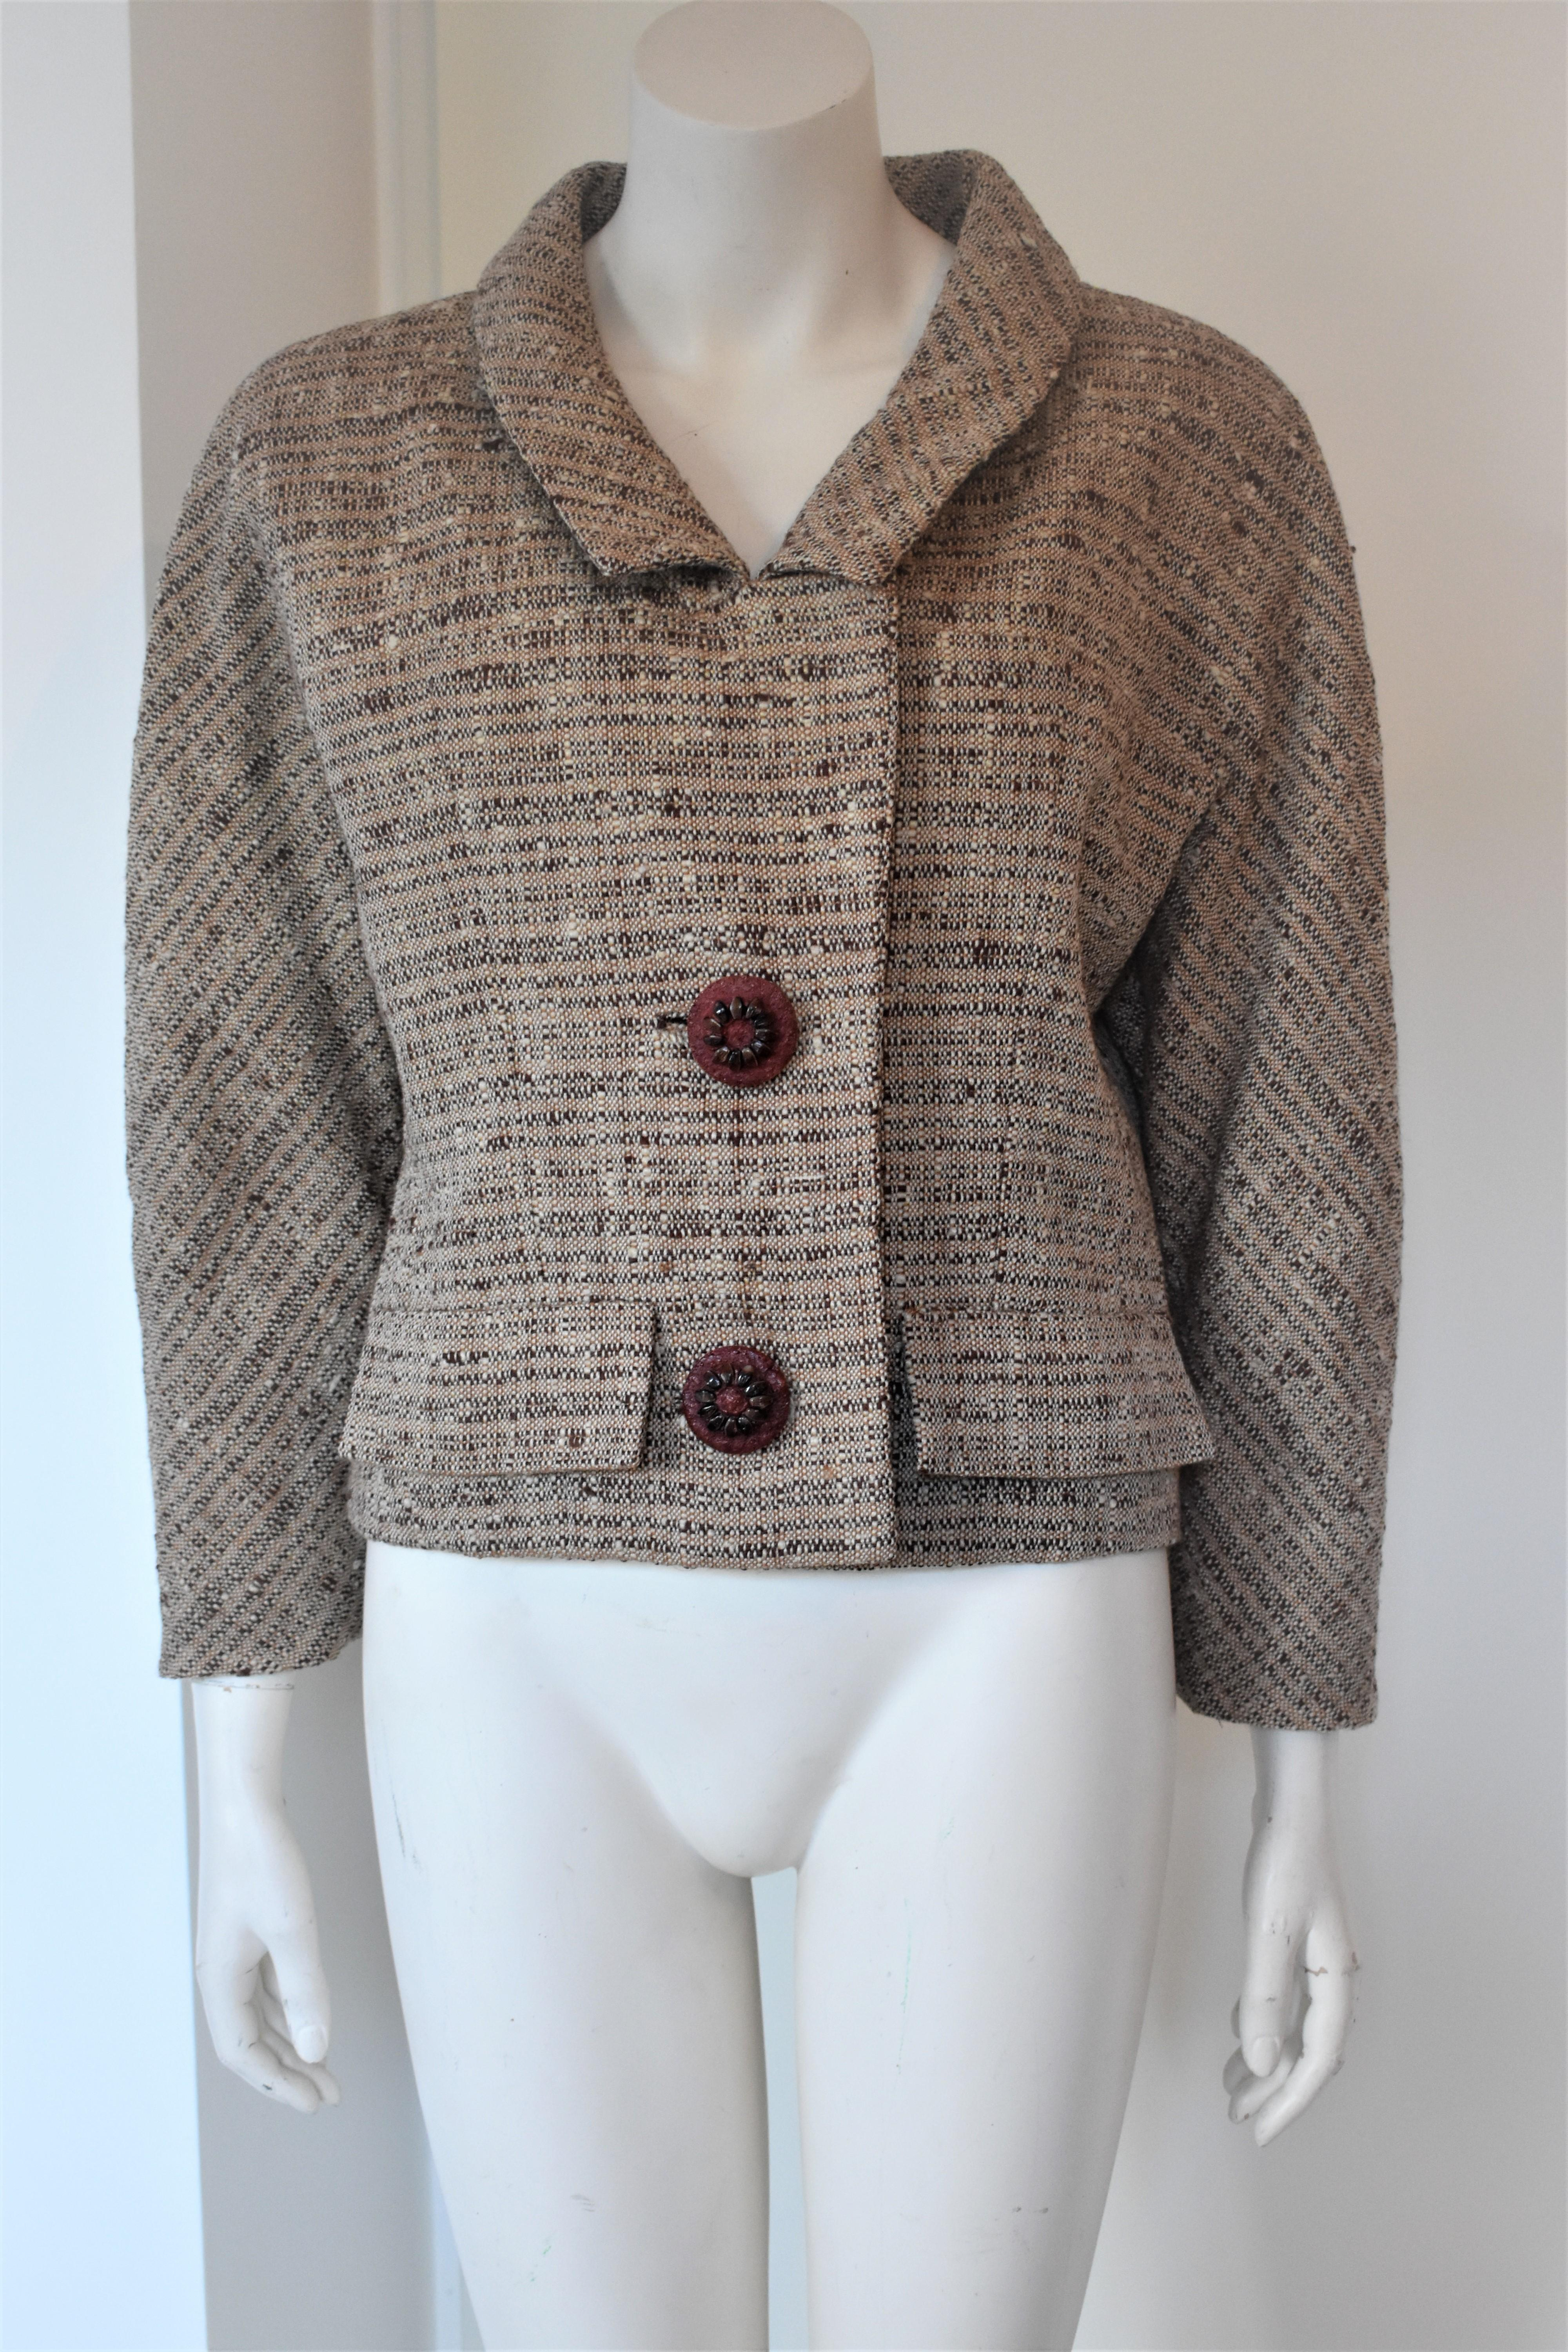 0f3ca5f545ae8d Vintage Givenchy Haute Couture Tweed Jacket Audrey Hepburn Style, Circa  1958 For Sale at 1stdibs